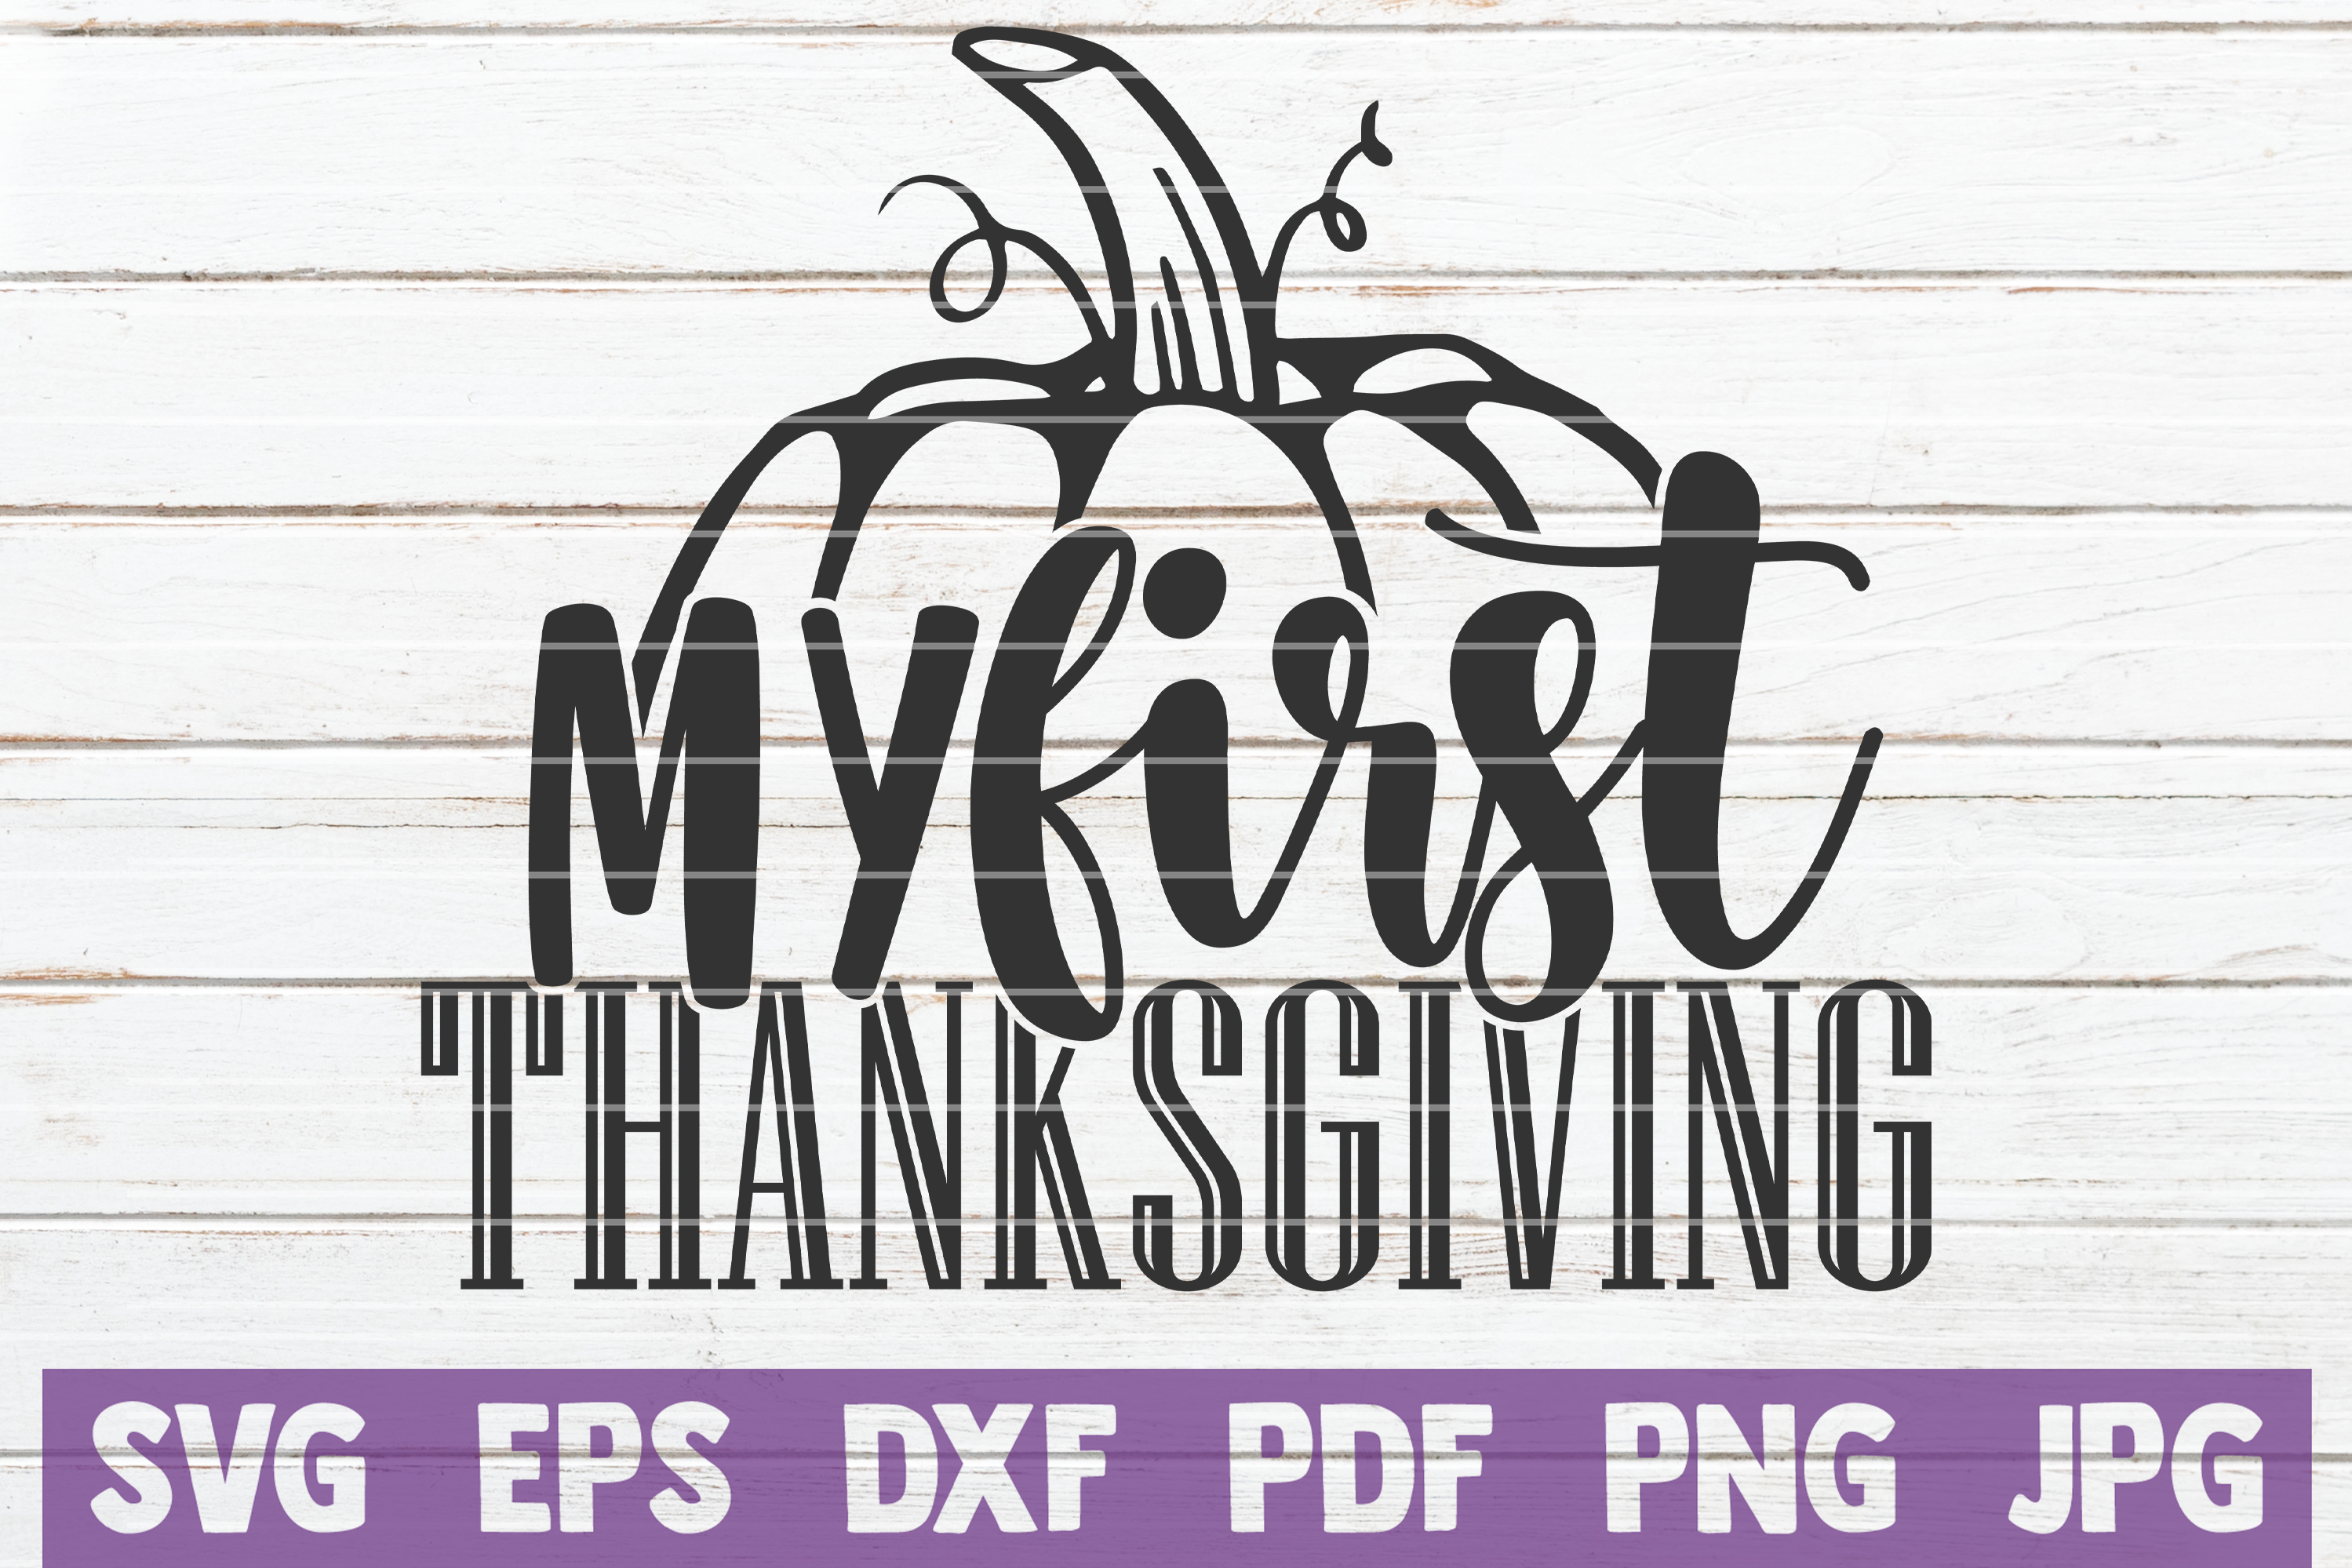 First Thanksgiving Svg Free Svg Cut Files Create Your Diy Projects Using Your Cricut Explore Silhouette And More The Free Cut Files Include Svg Dxf Eps And Png Files